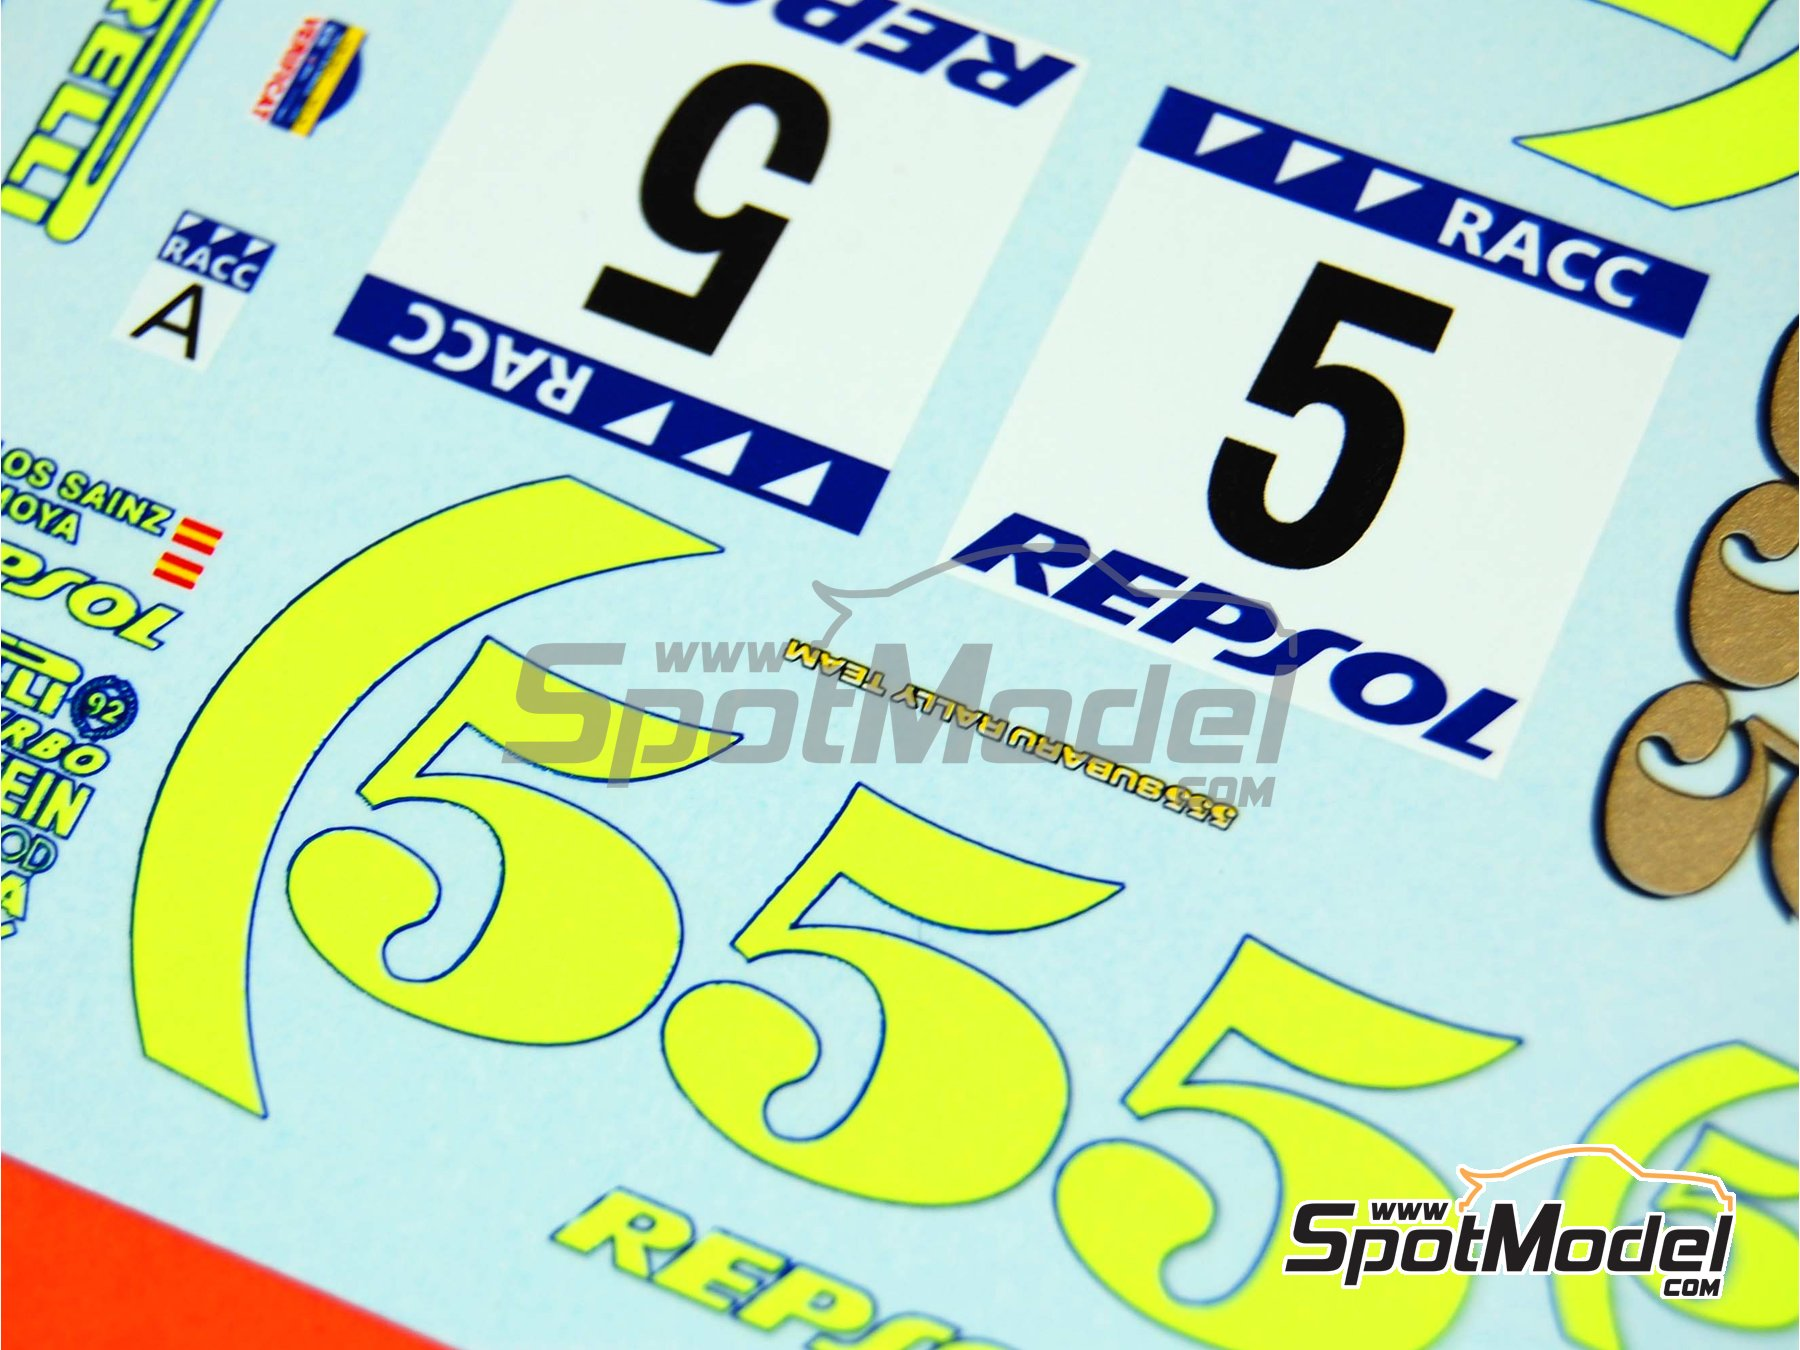 Image 15: Subaru Impreza 555 Group A Repsol - Catalunya Costa Dorada RACC Rally, Great Britain RAC Rally 1995 | Marking / livery in 1/24 scale manufactured by Renaissance Models (ref. TK24-289)